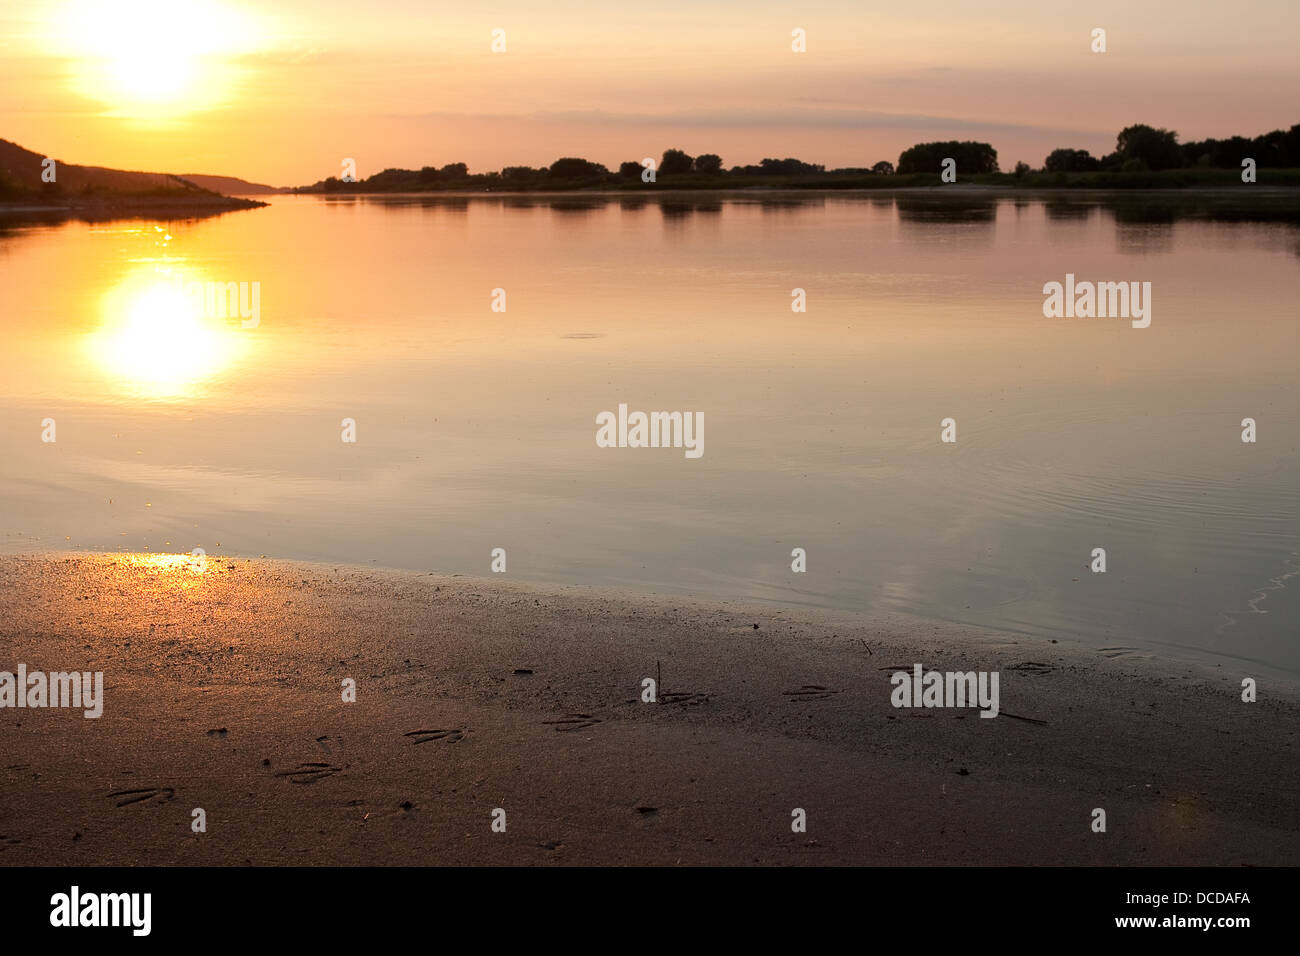 Abendstimmung an der Elbe, Sonnenuntergang, Evening mood on the Elbe, sundown - Stock Image